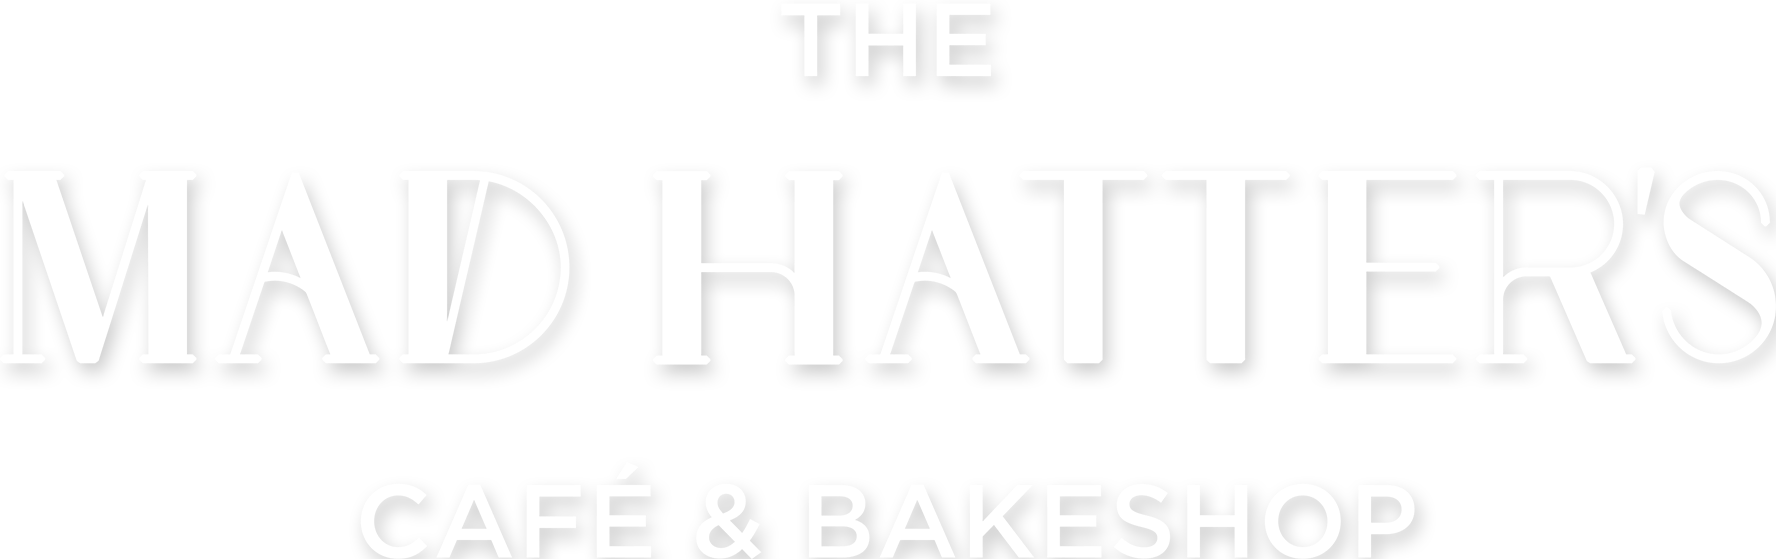 The Mad Hatter Cafe & Bakeshop